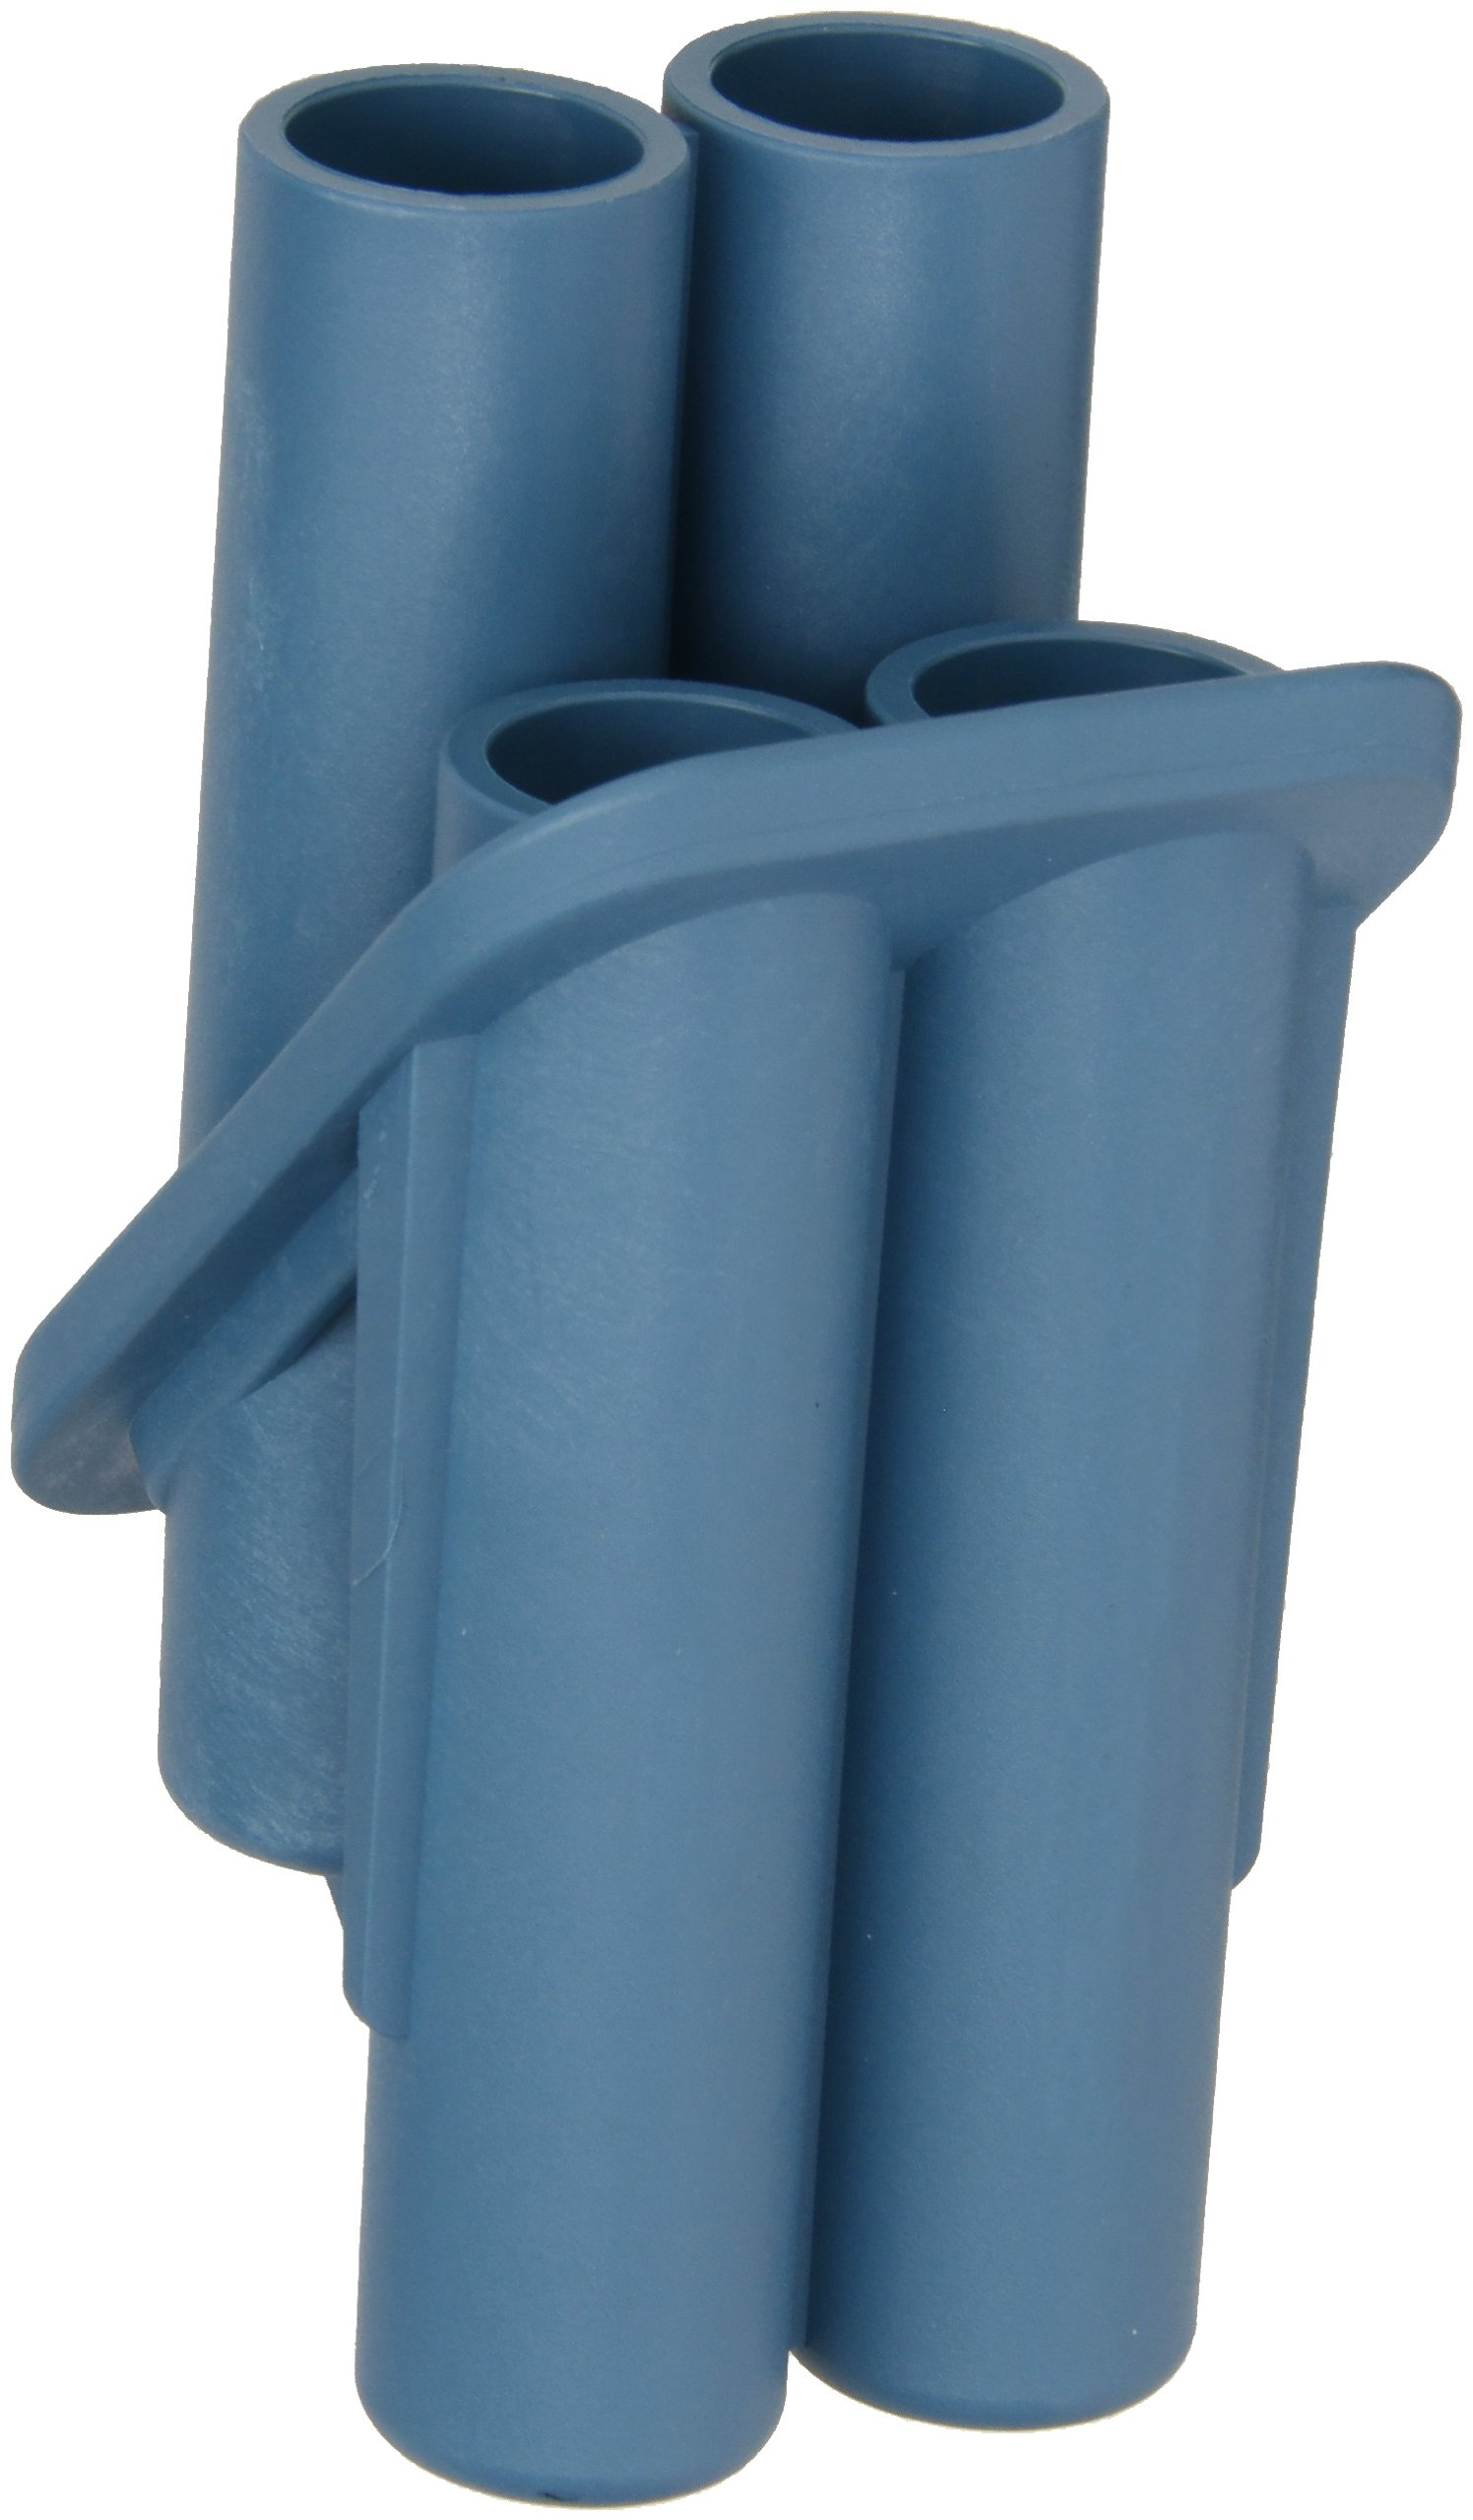 Hettich 1467 Adapter, For 15mL Conical Tubes (Pack of 4)